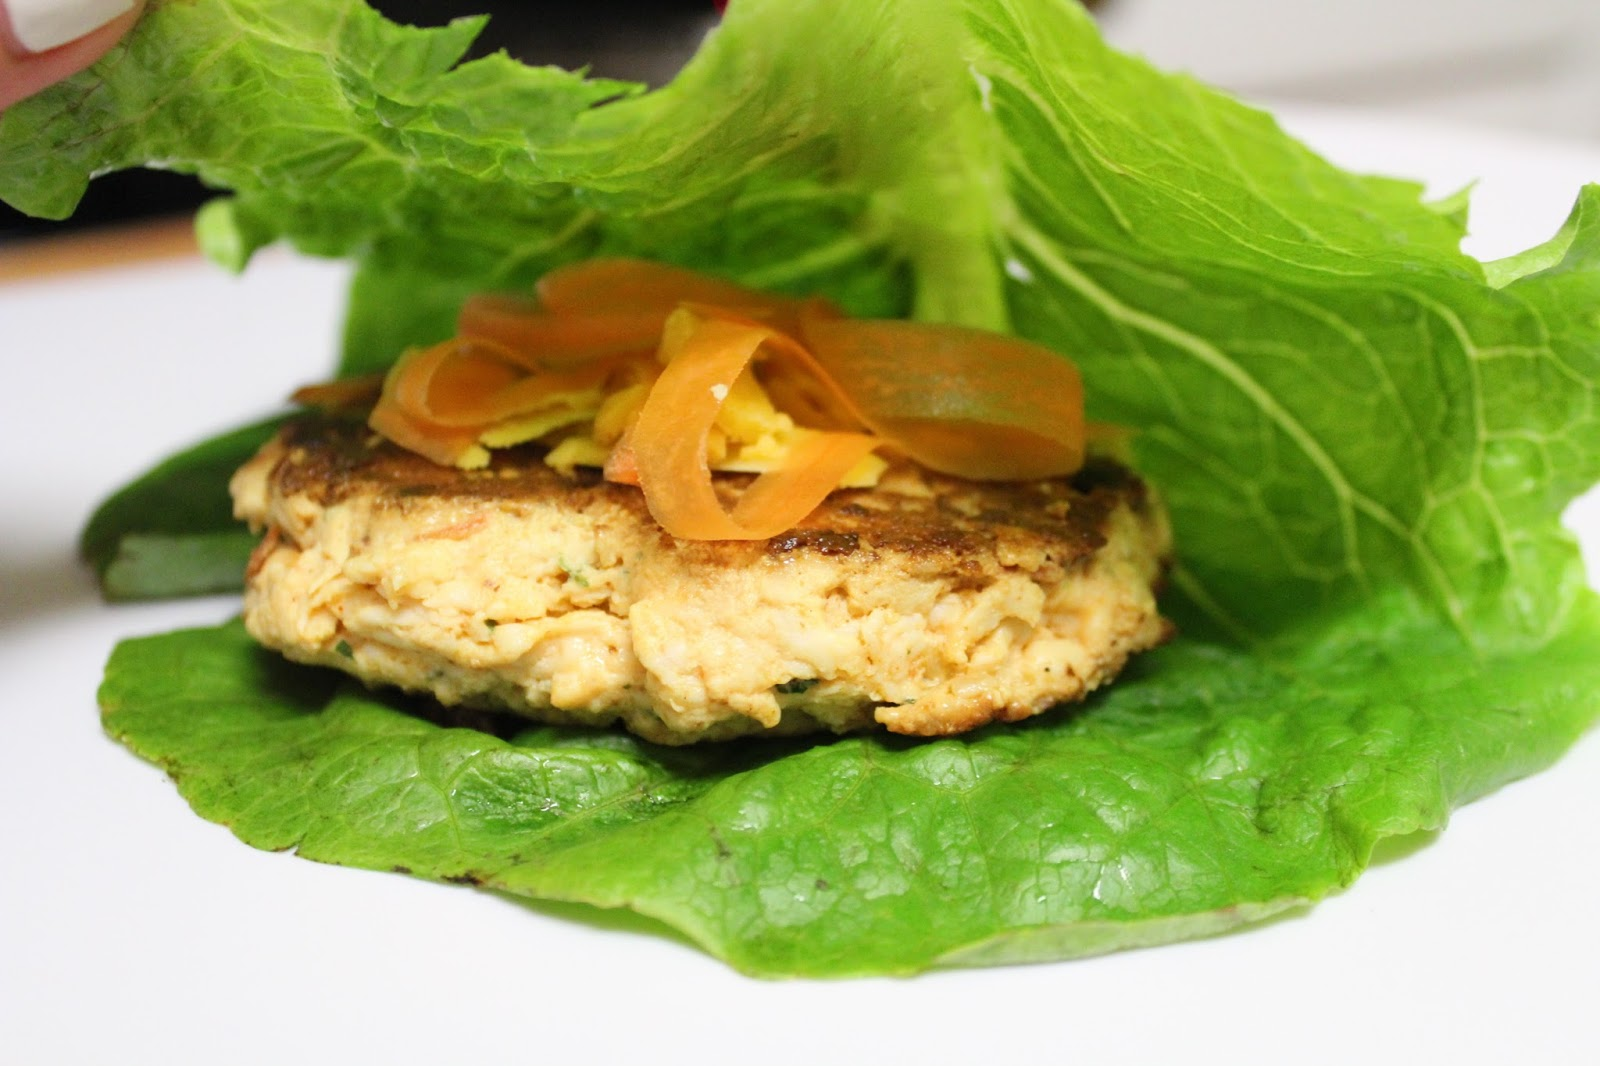 Spicy Buffalo chicken burgers with a lettuce wrap and buffalo ranch